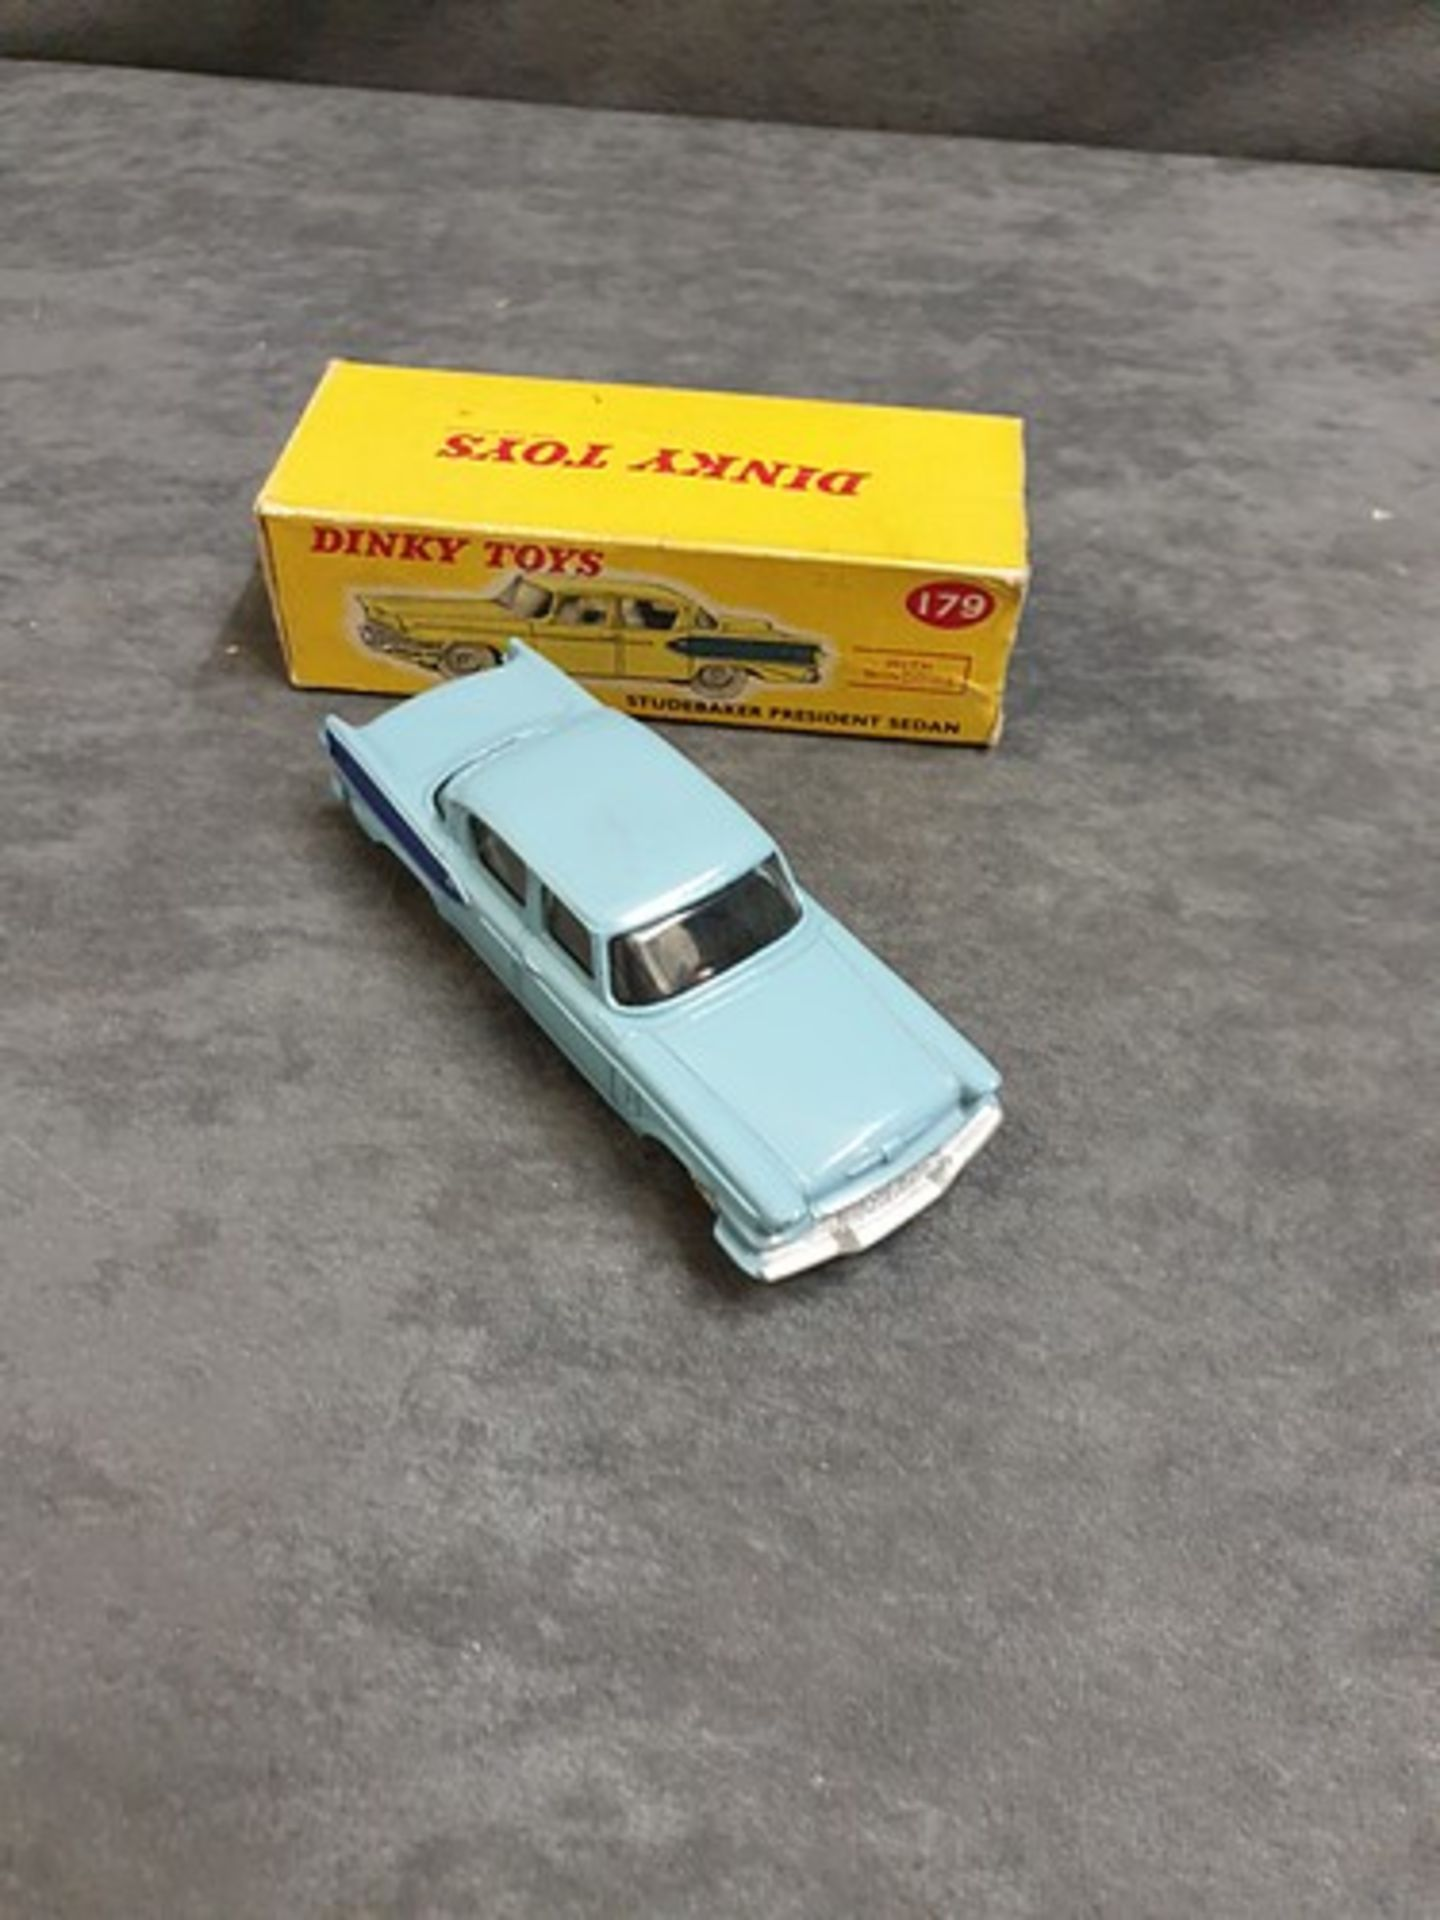 Dinky #179 Studebaker President Sedan In Two Tone Blue With White Wheels Nr Mint Model In Firm Box - Image 2 of 3